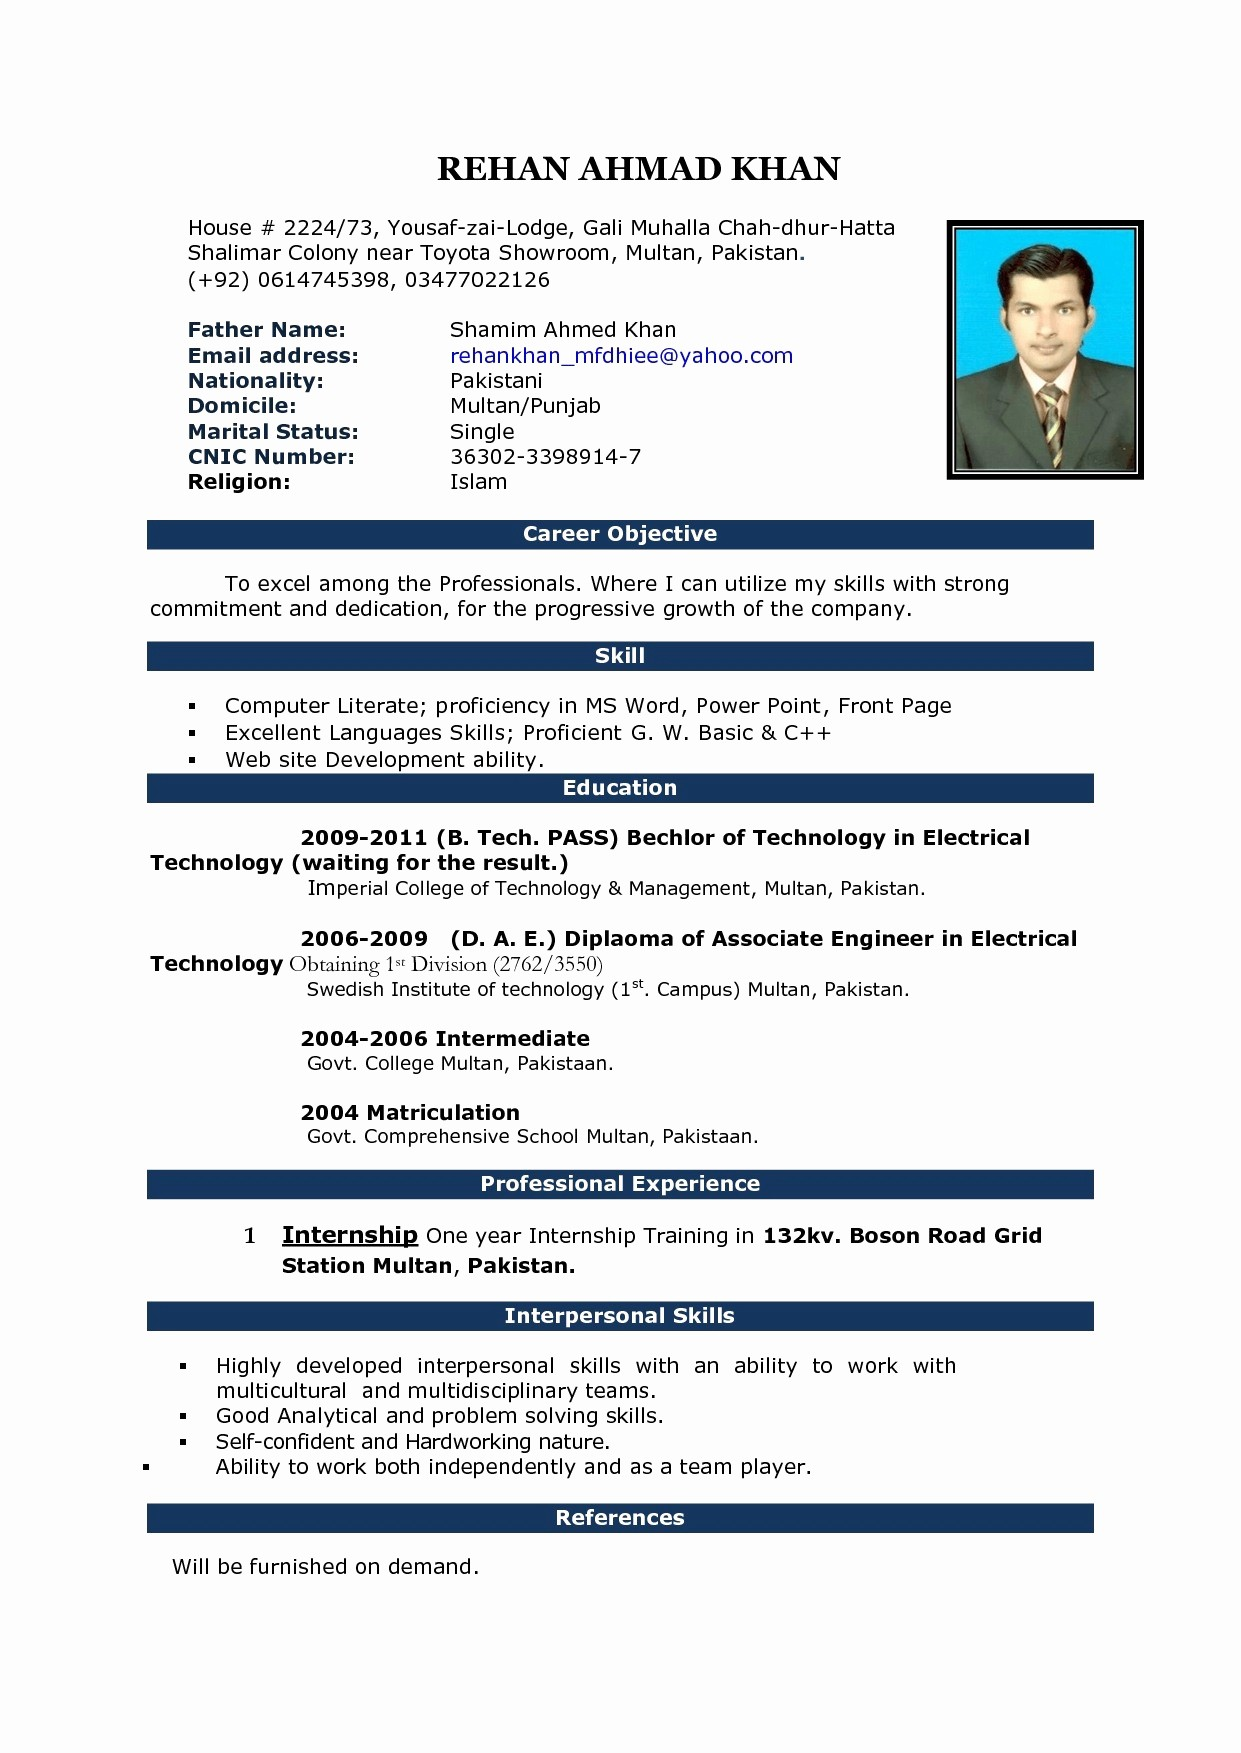 Ms Word 2007 Resume Templates Luxury Best Resume Templates Microsoft Word 2007